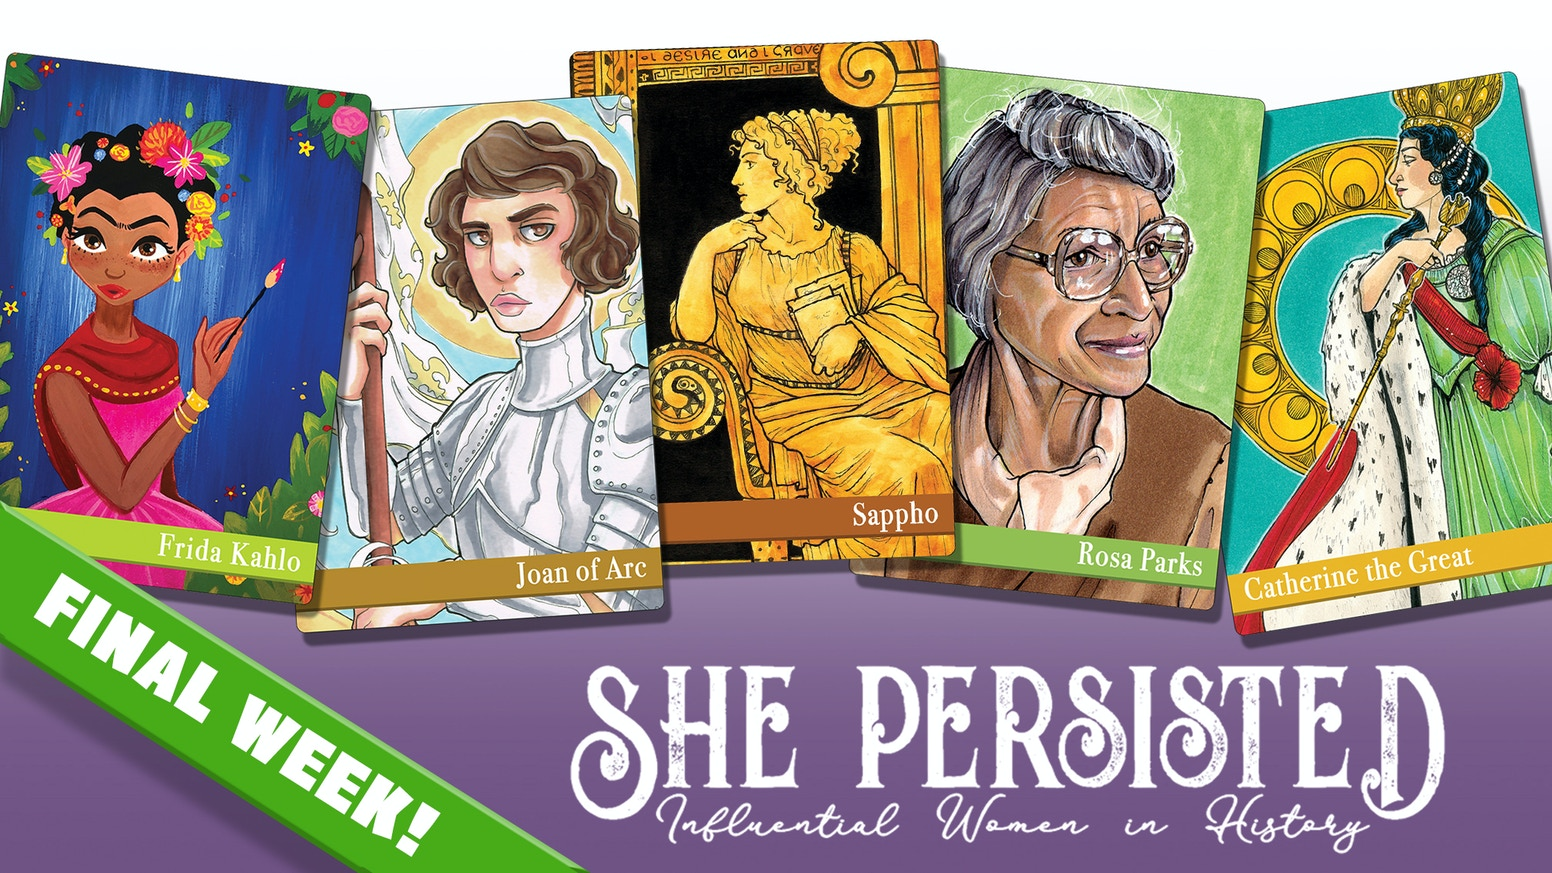 FIFTY of the most influential women in history featured on Flashcards, Prints, a Coloring Book and more!